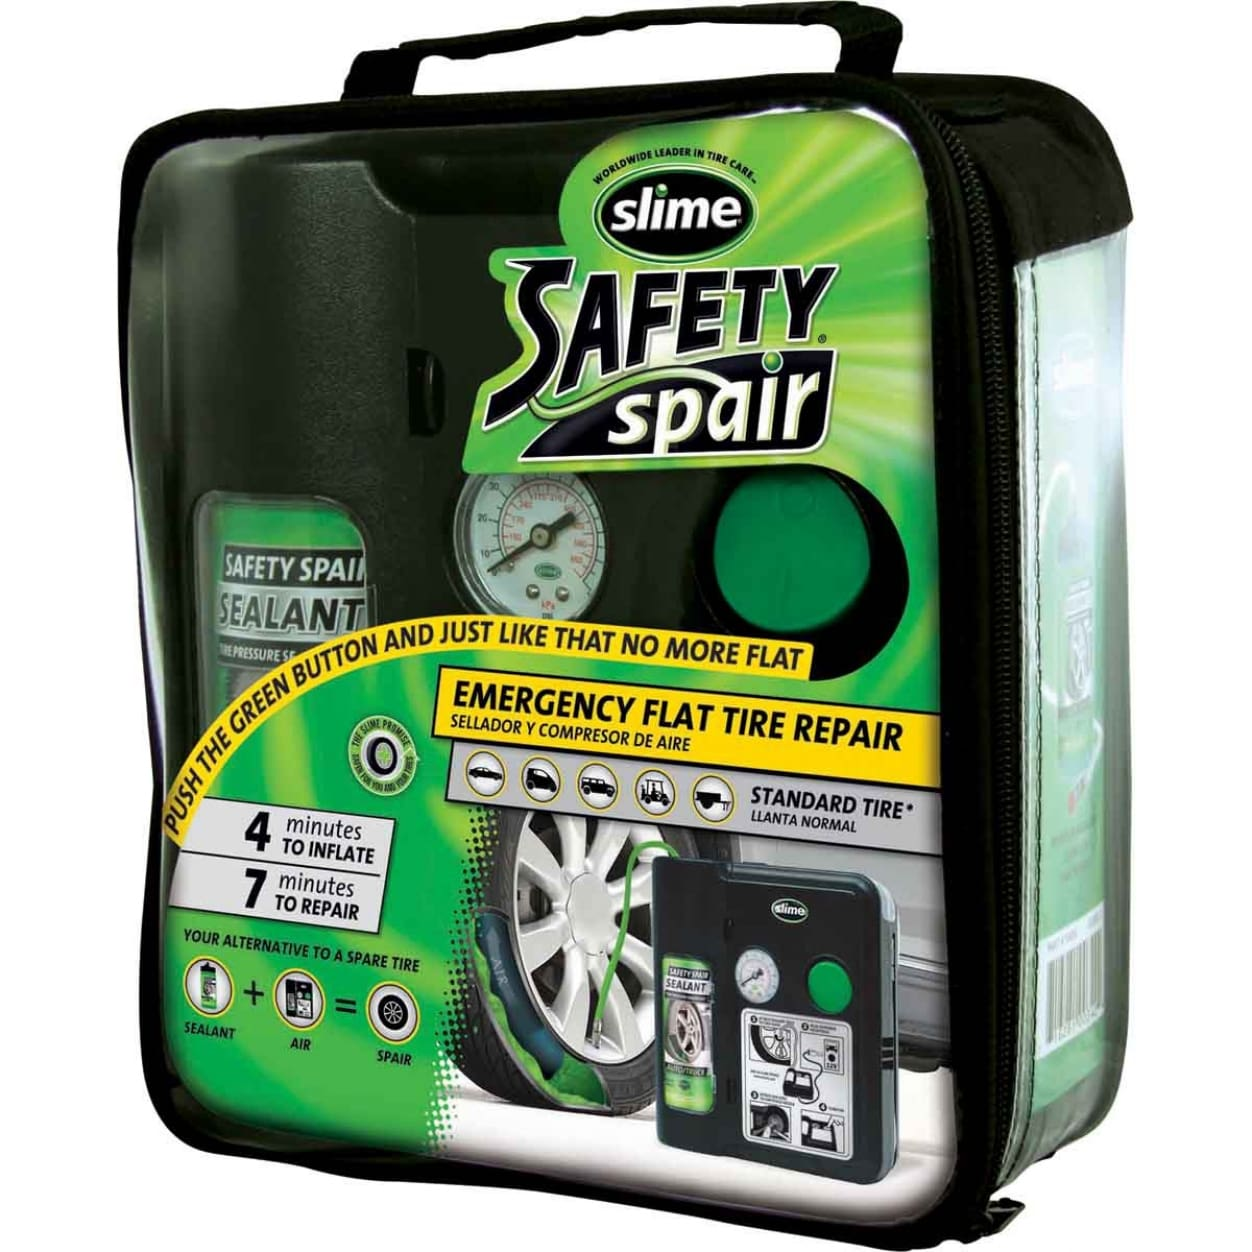 AFTERMARKET: Repair Your Flat Tire in 7-Minutes with Slime 70004 Power Spair